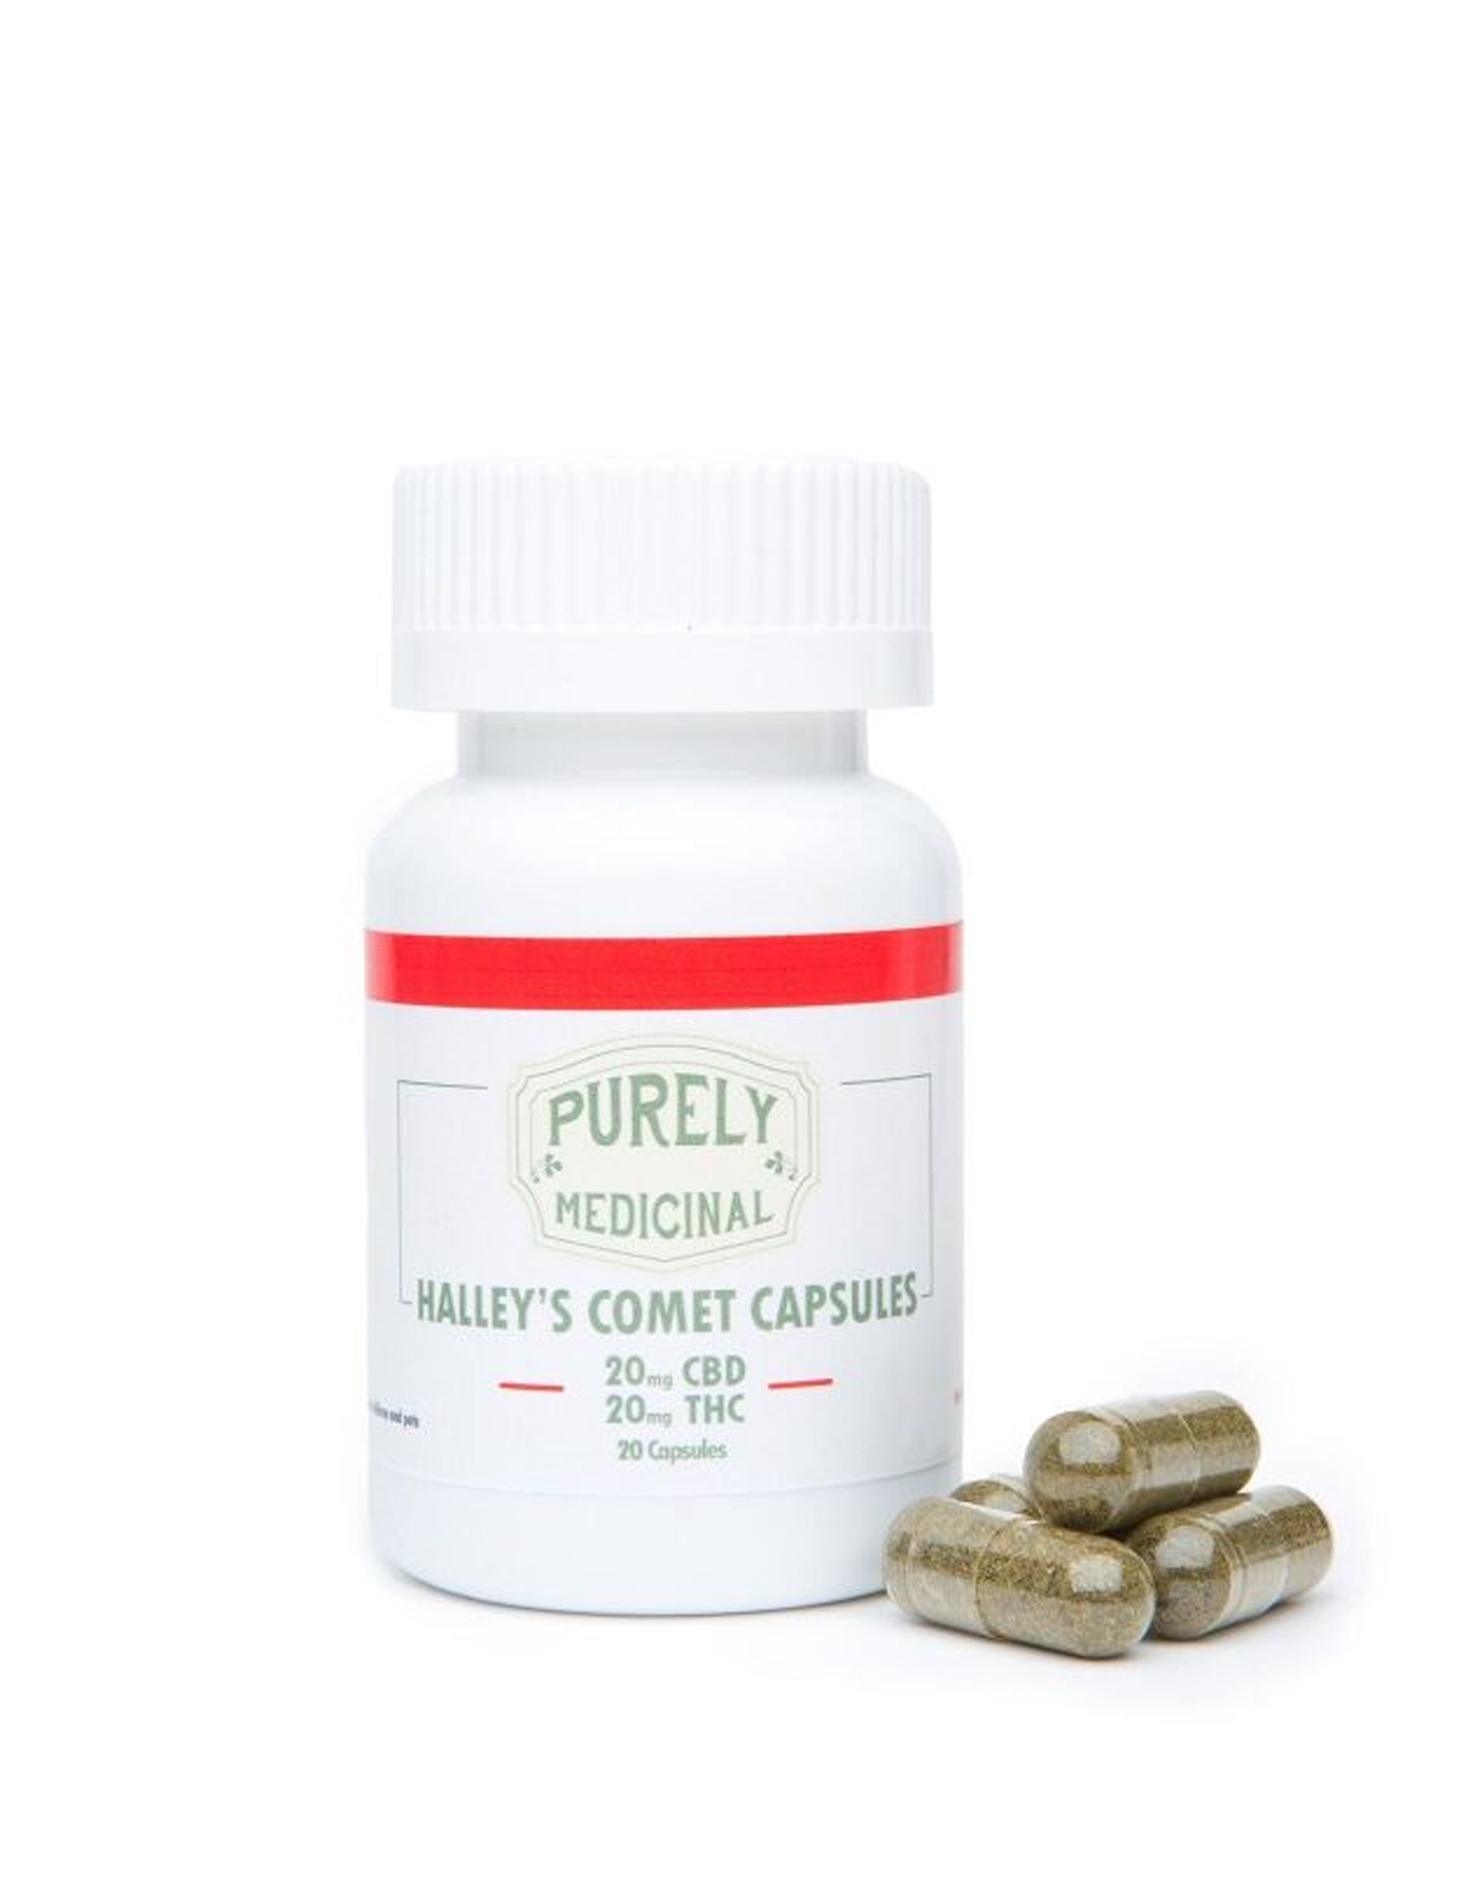 Halleys Comet Capsules (20mg THC & 20mg CBD) by Purely Medicinal by Ganja Grams - Image © 2018 Ganja Grams. All Rights Reserved.